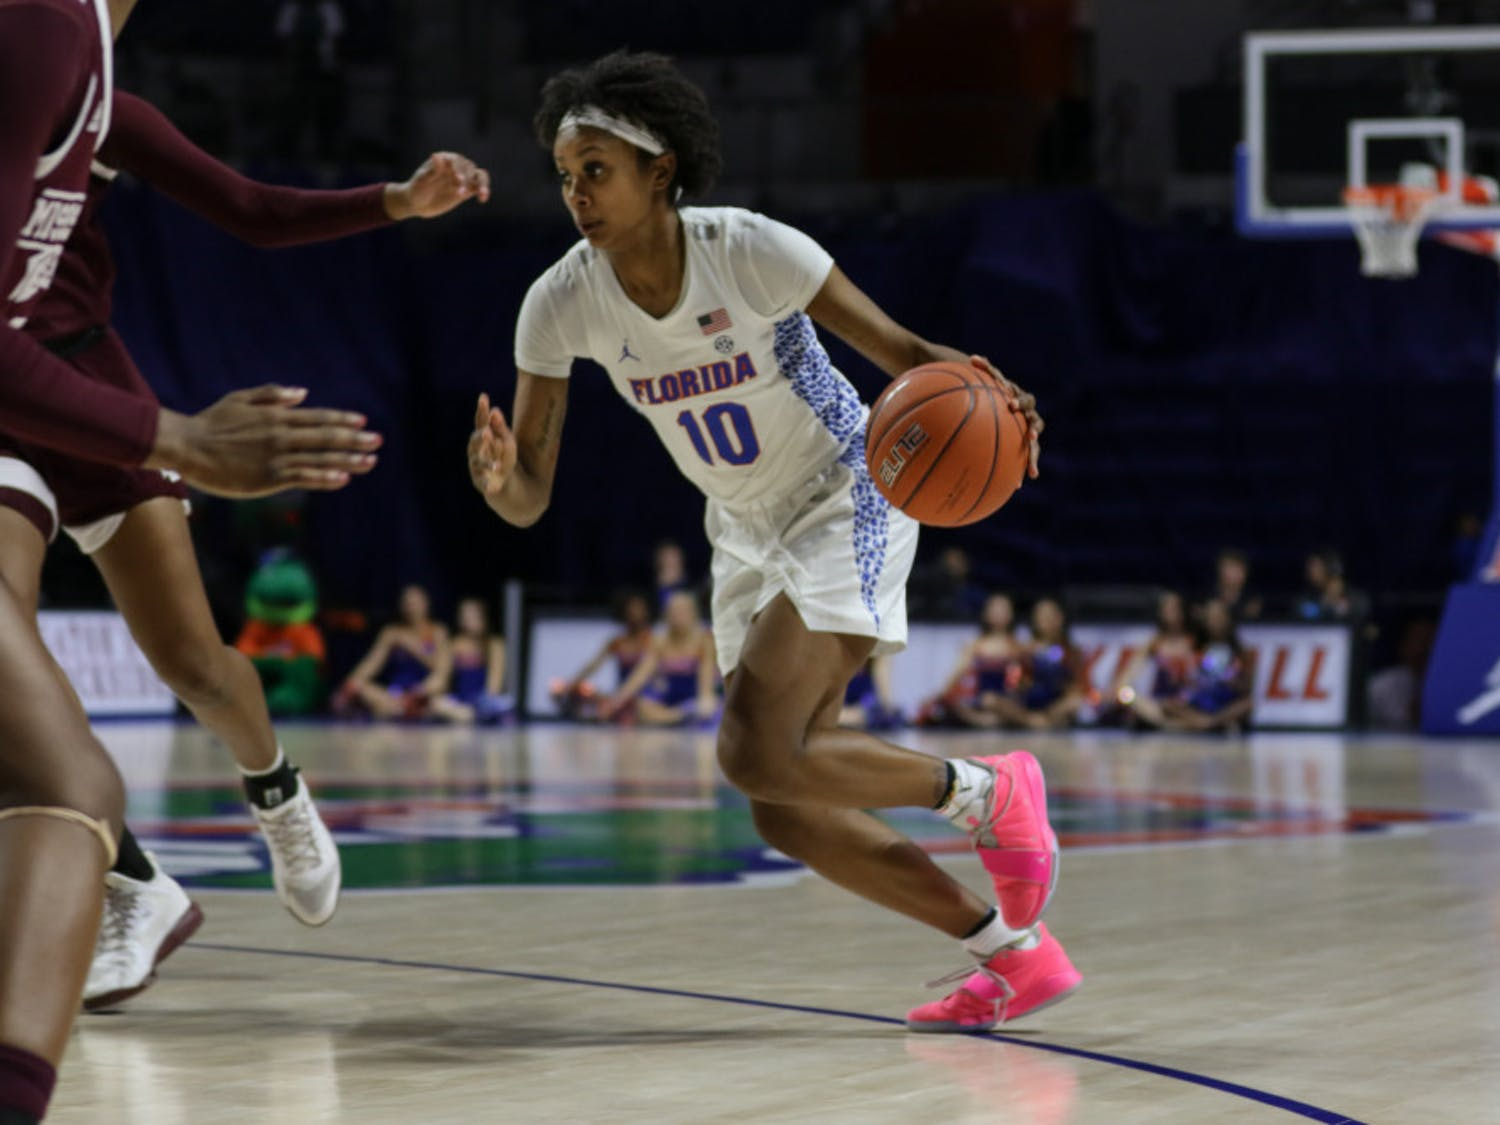 Guard Danielle Rainey averaged 8.2 points per game off the bench last season and made 28 three-pointers.